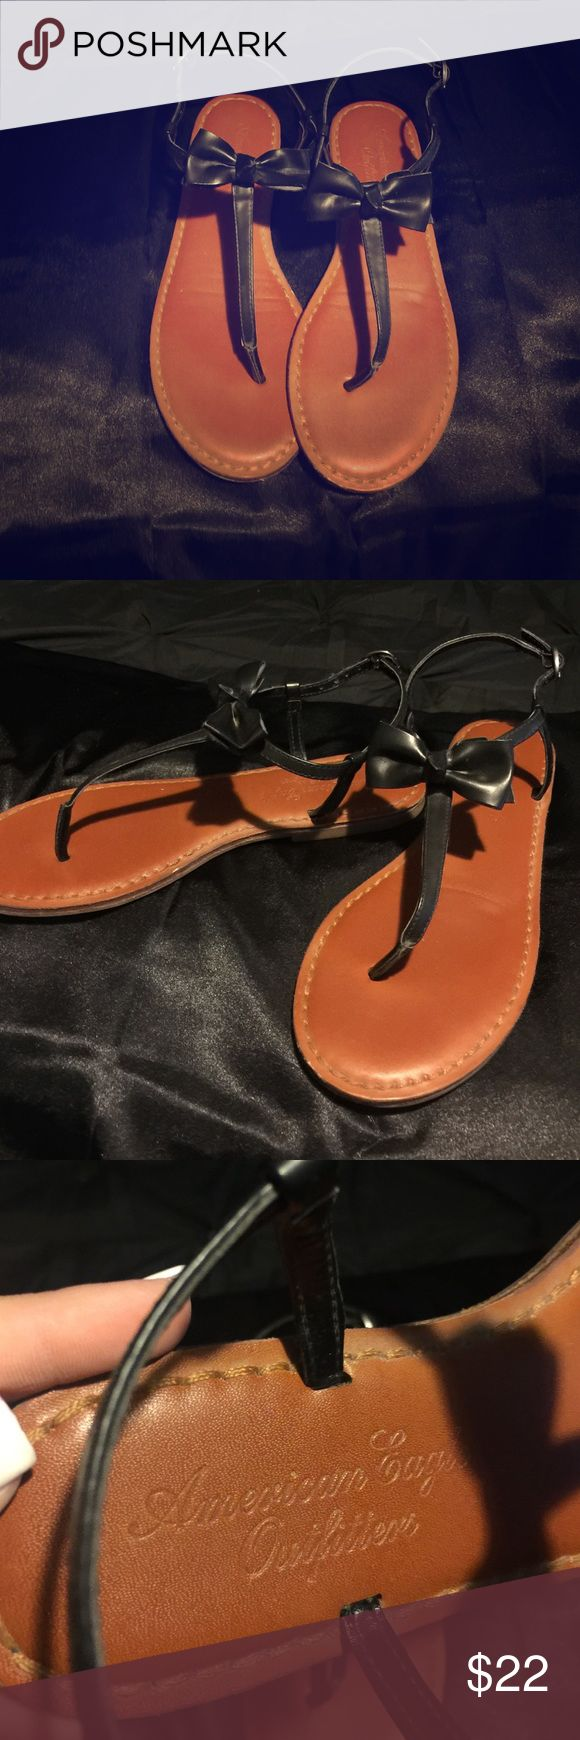 Bow sandals!! Practically brand new Black with a bow sandals!! Worn once in great condition nothings wrong with them just never wear open toed shoes more of a boot girl! Offer you price 💖 American Eagle Outfitters Shoes Sandals